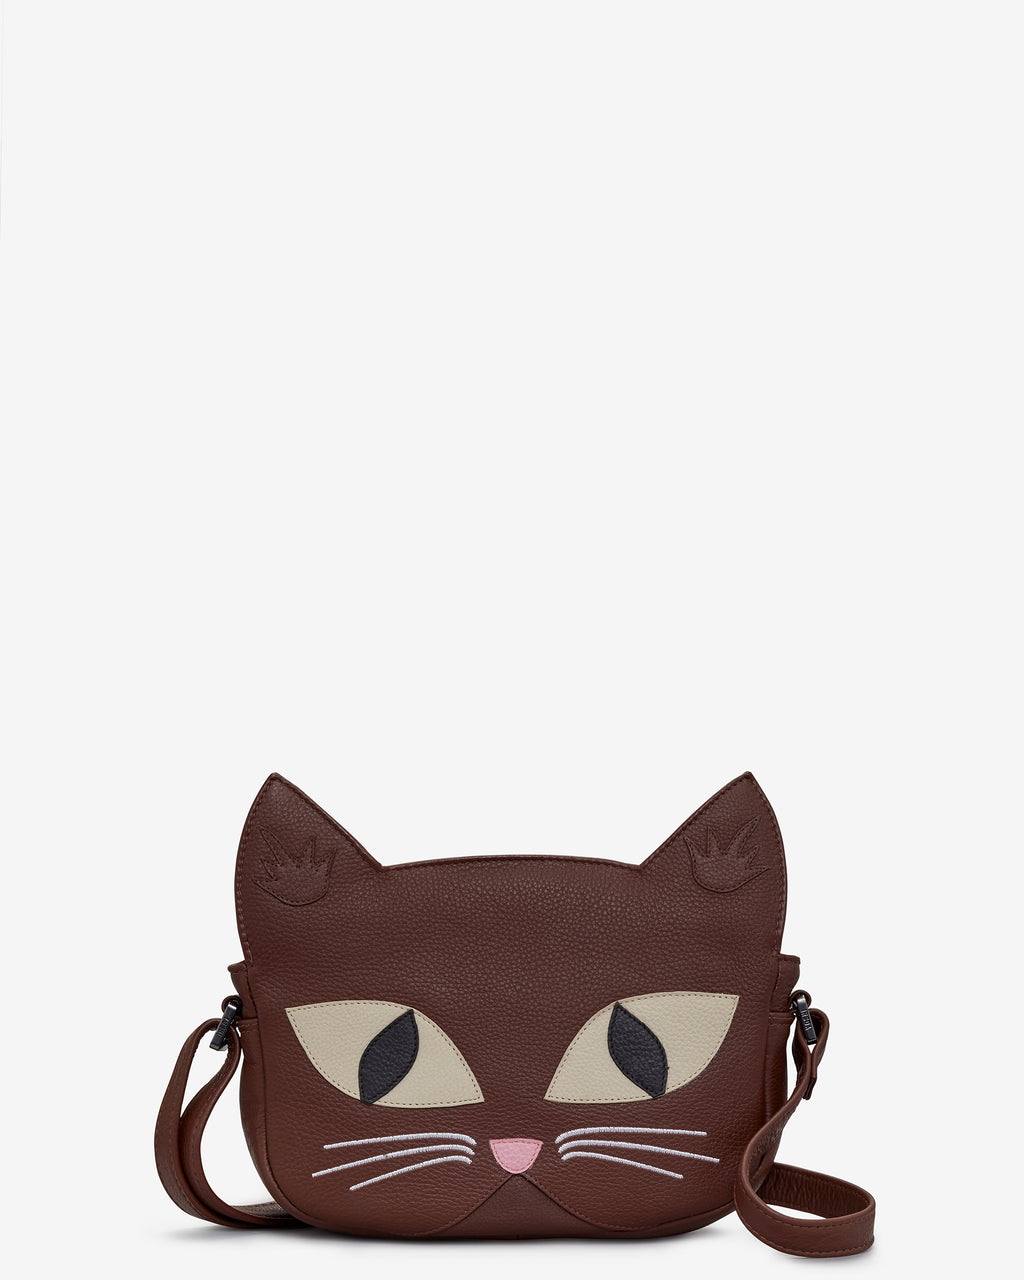 Augustus the Cat Brown Leather Cross Body Bag